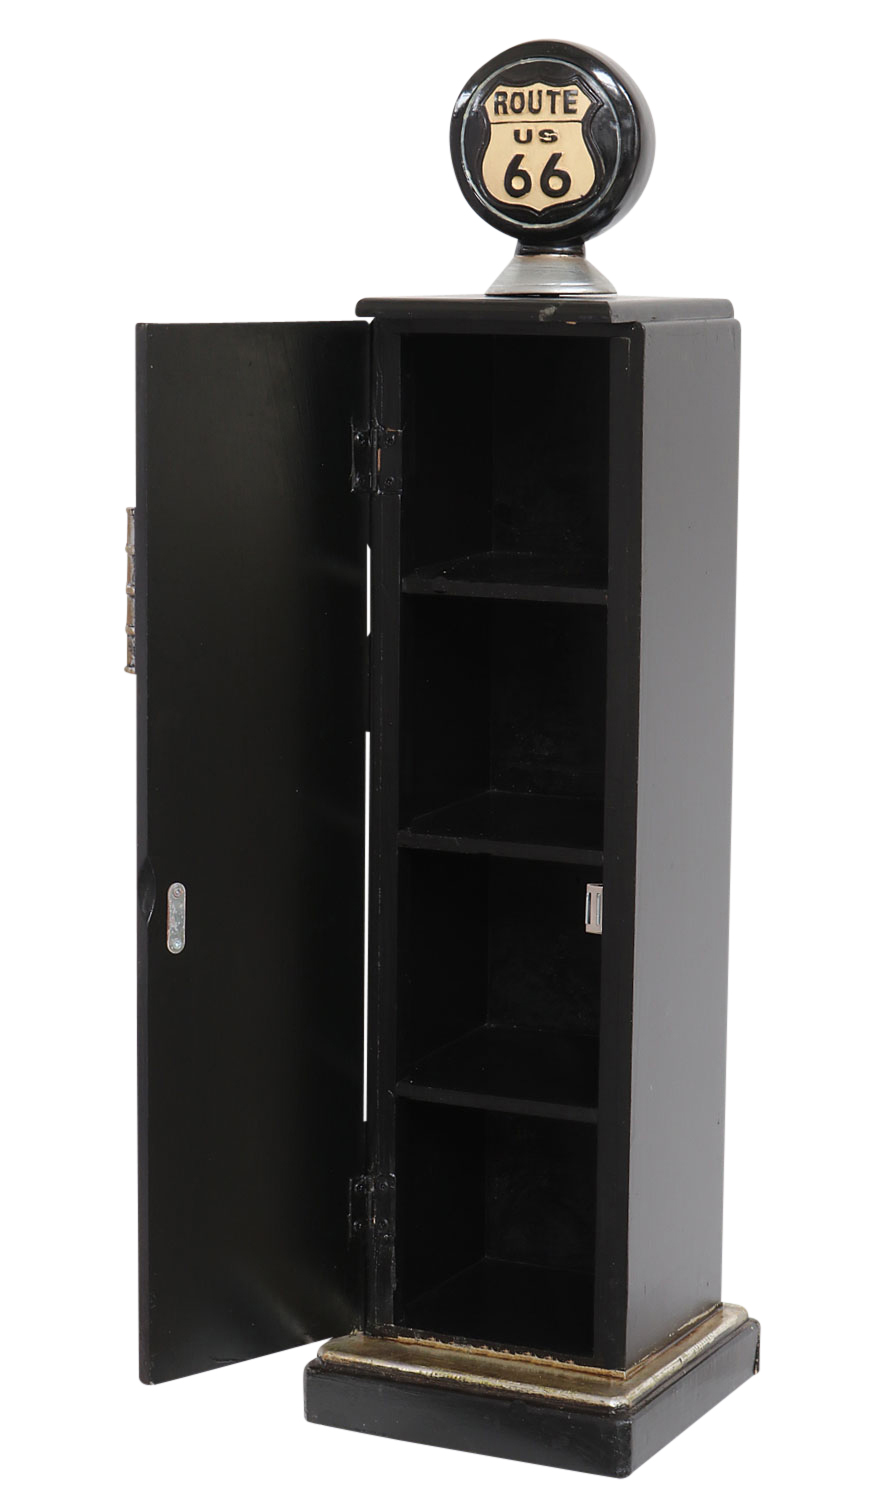 Cd Ständer Dispenser Tank Column Shelf 87cm Cd Cabinet Rack Cd Rack Route 66